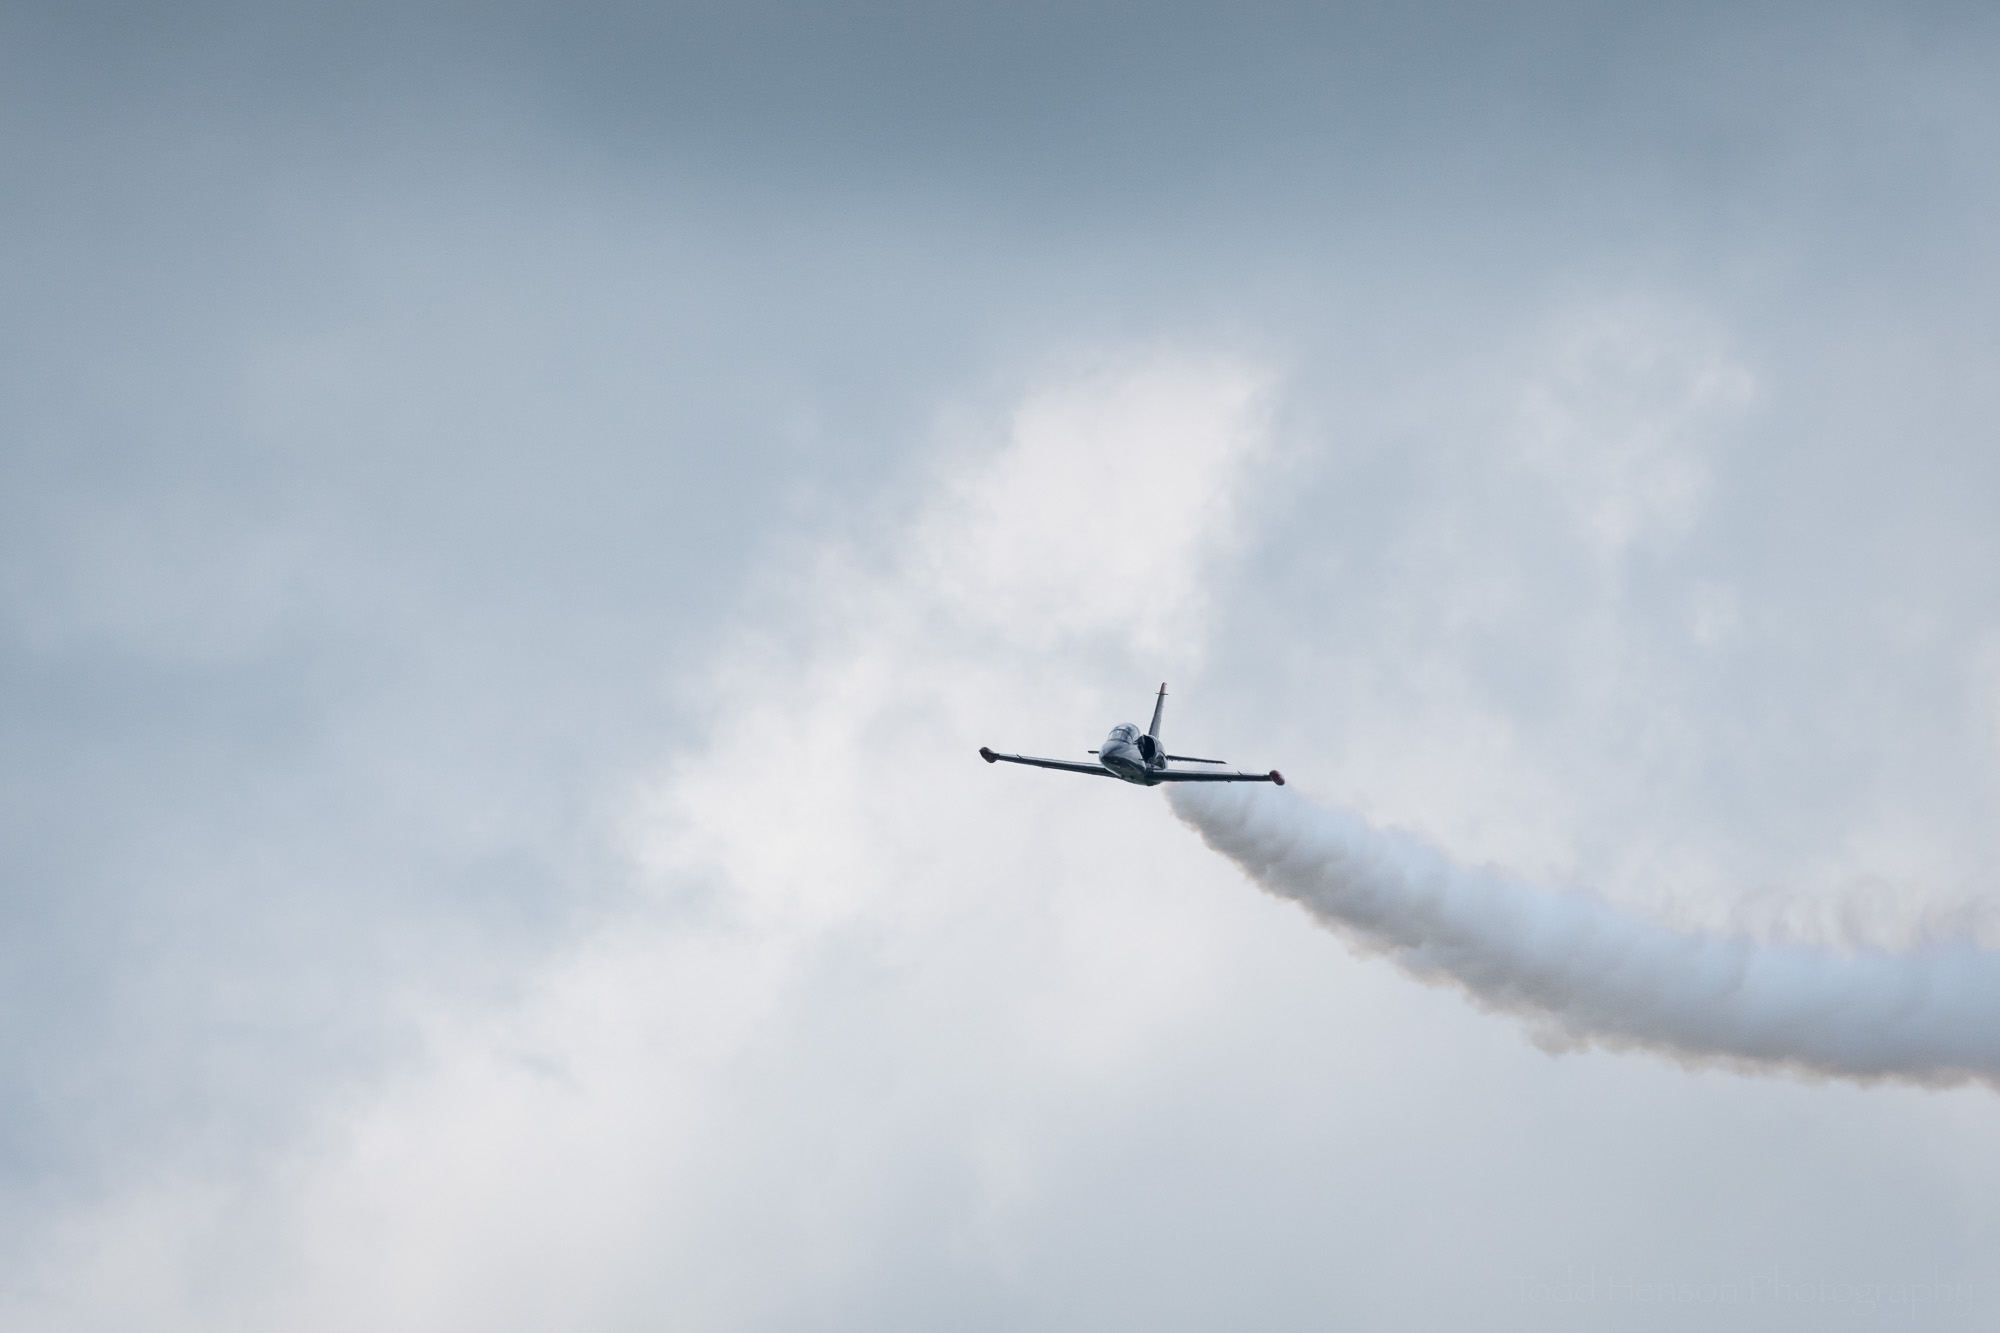 One of the Warrior Flight Team L-39's coming in from a distance, trailing smoke.